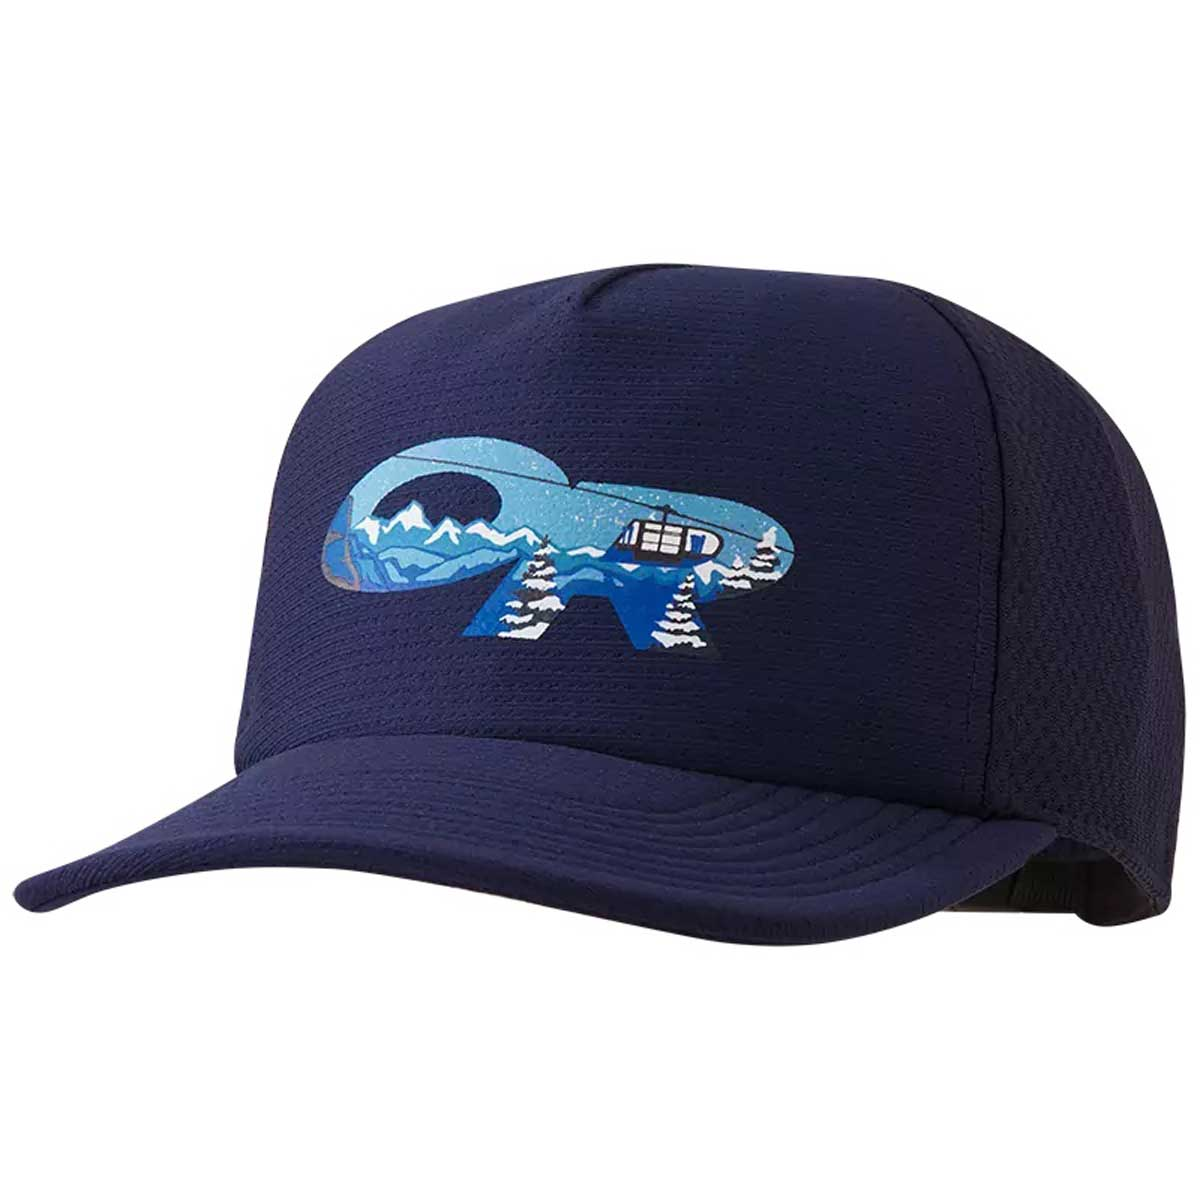 Outdoor Research Alpine Performance Trucker Hat in Night